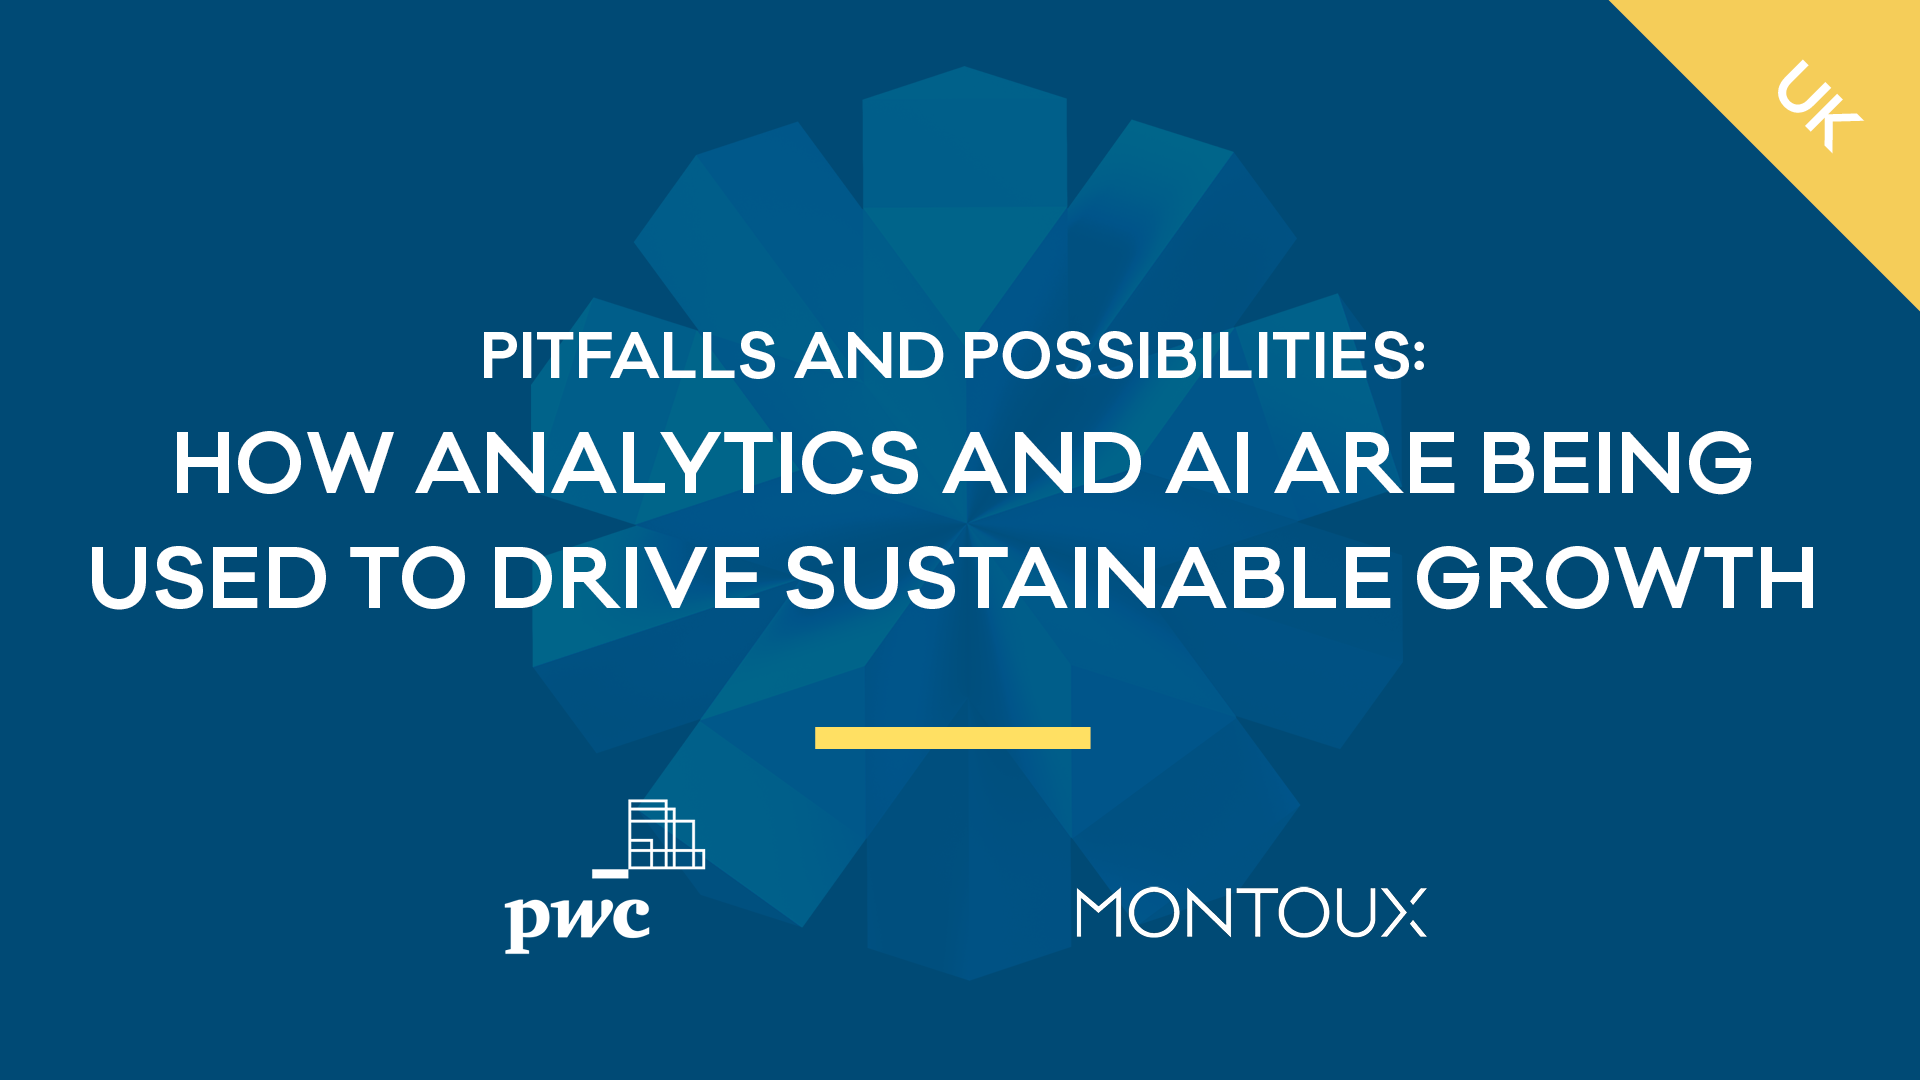 Pitfalls and possibilities:How analytics and AI are being used to drive sustainable growth